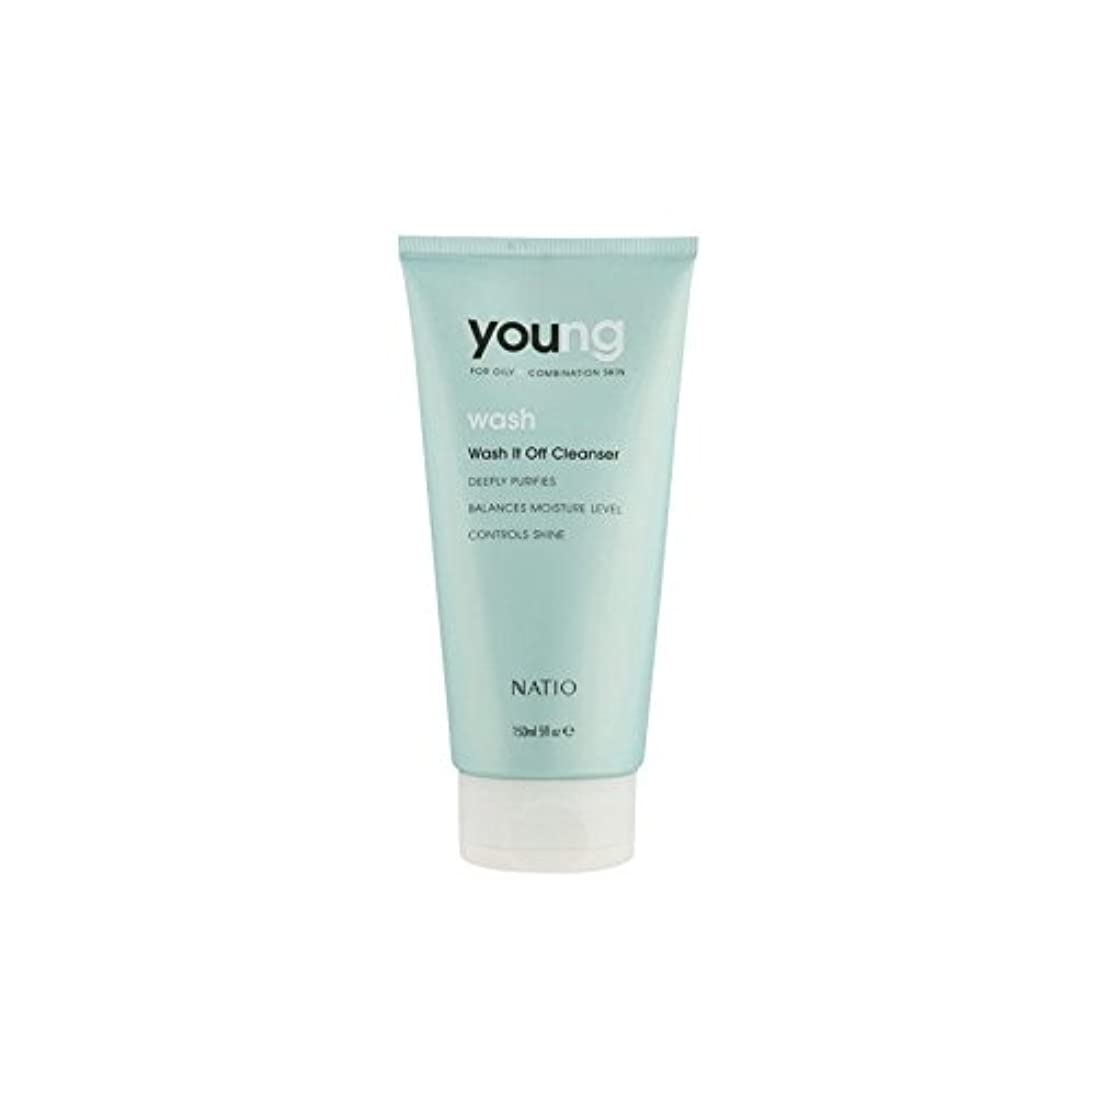 Natio Young Wash It Off Cleanser (150ml) (Pack of 6) - 若いウォッシュそれオフクレンザー(150ミリリットル) x6 [並行輸入品]